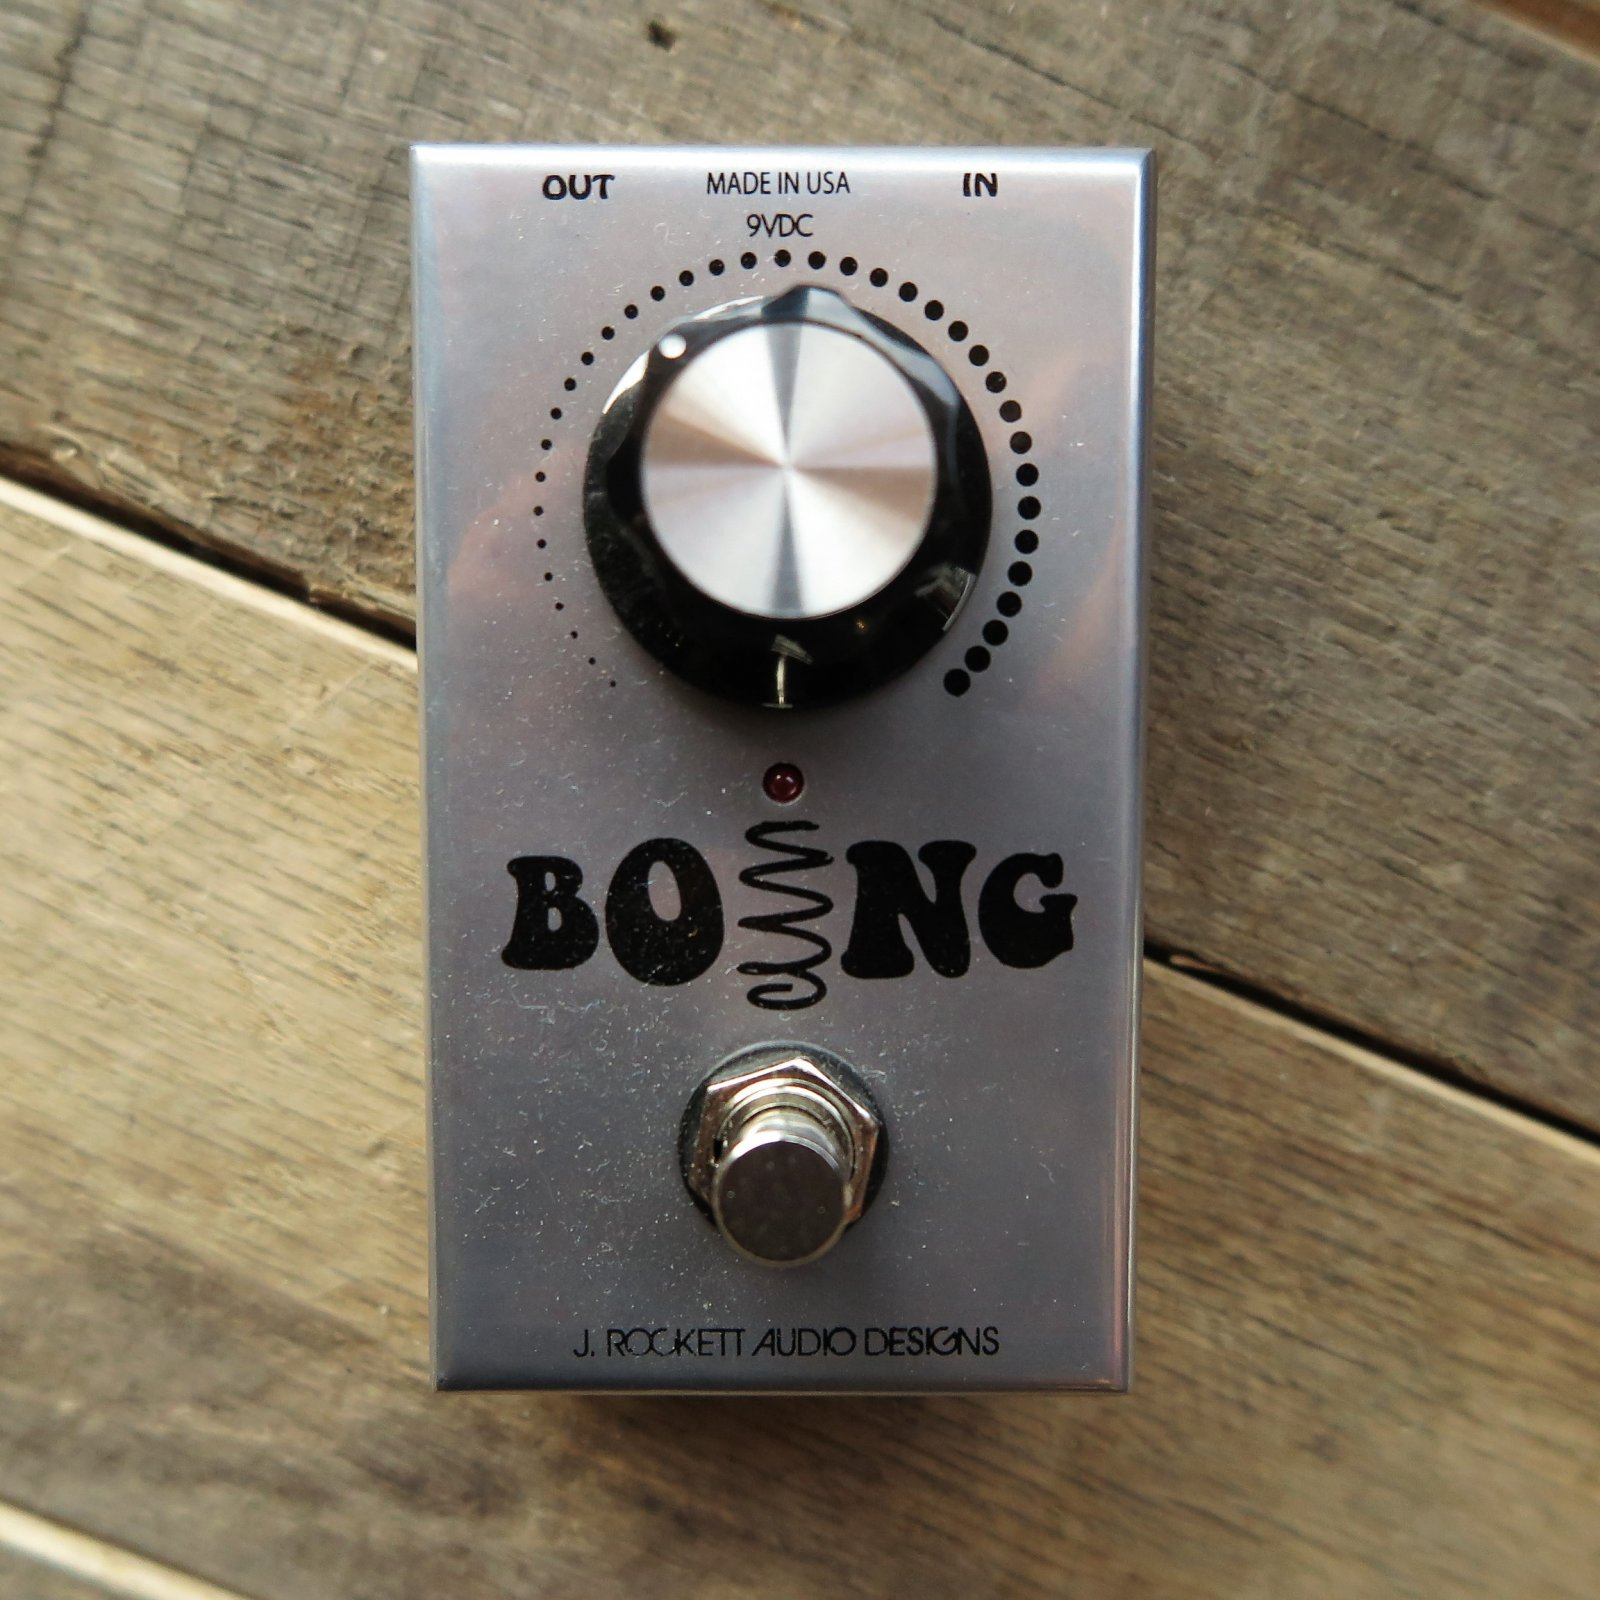 Boing J Rockett Audio Designs Boing Audiofanzine